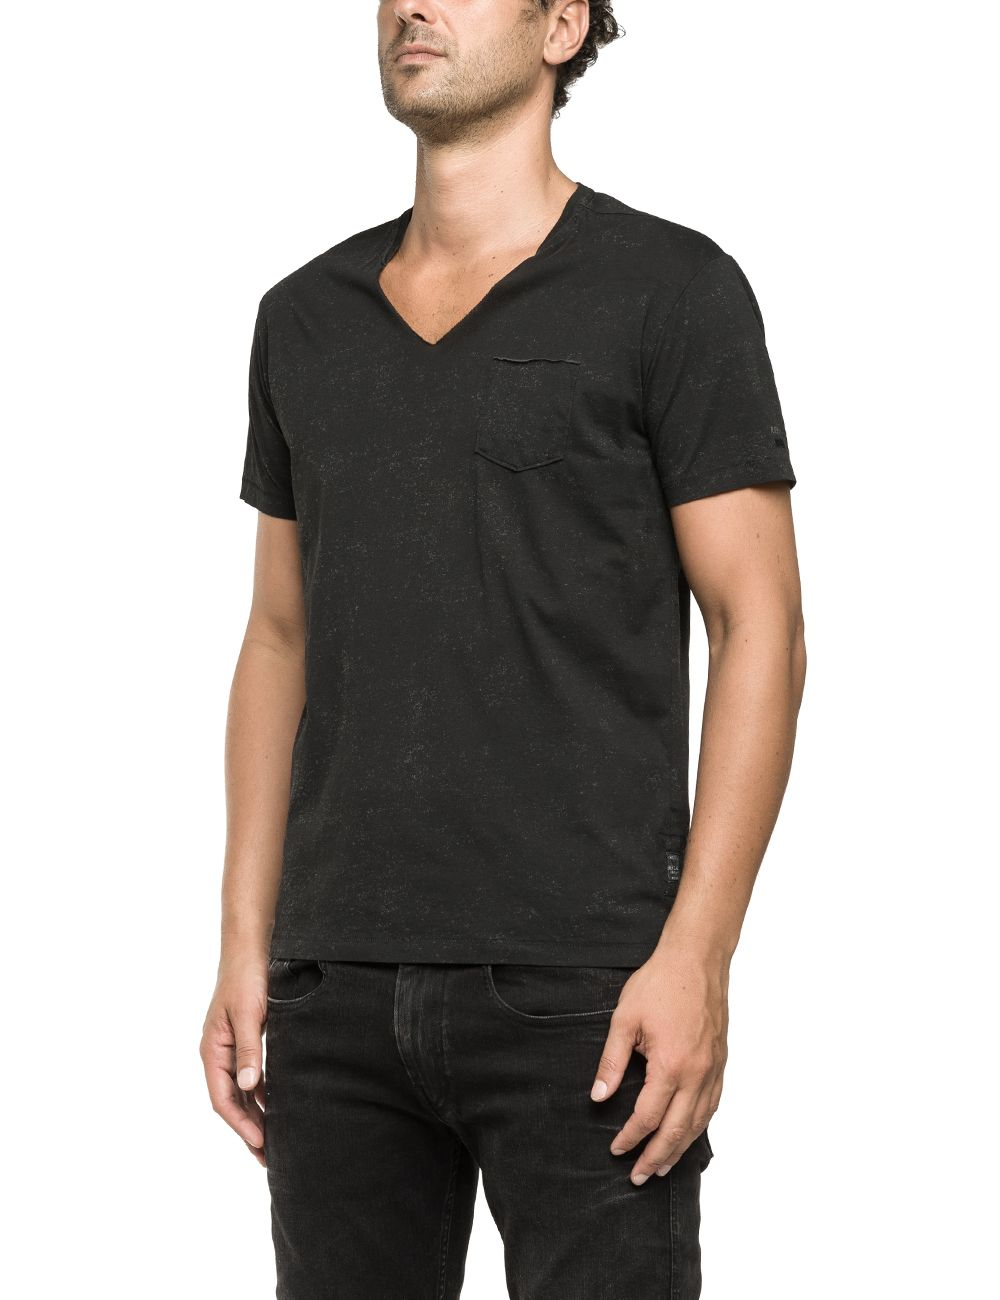 Black v neck t shirt for men the image V neck black t shirt